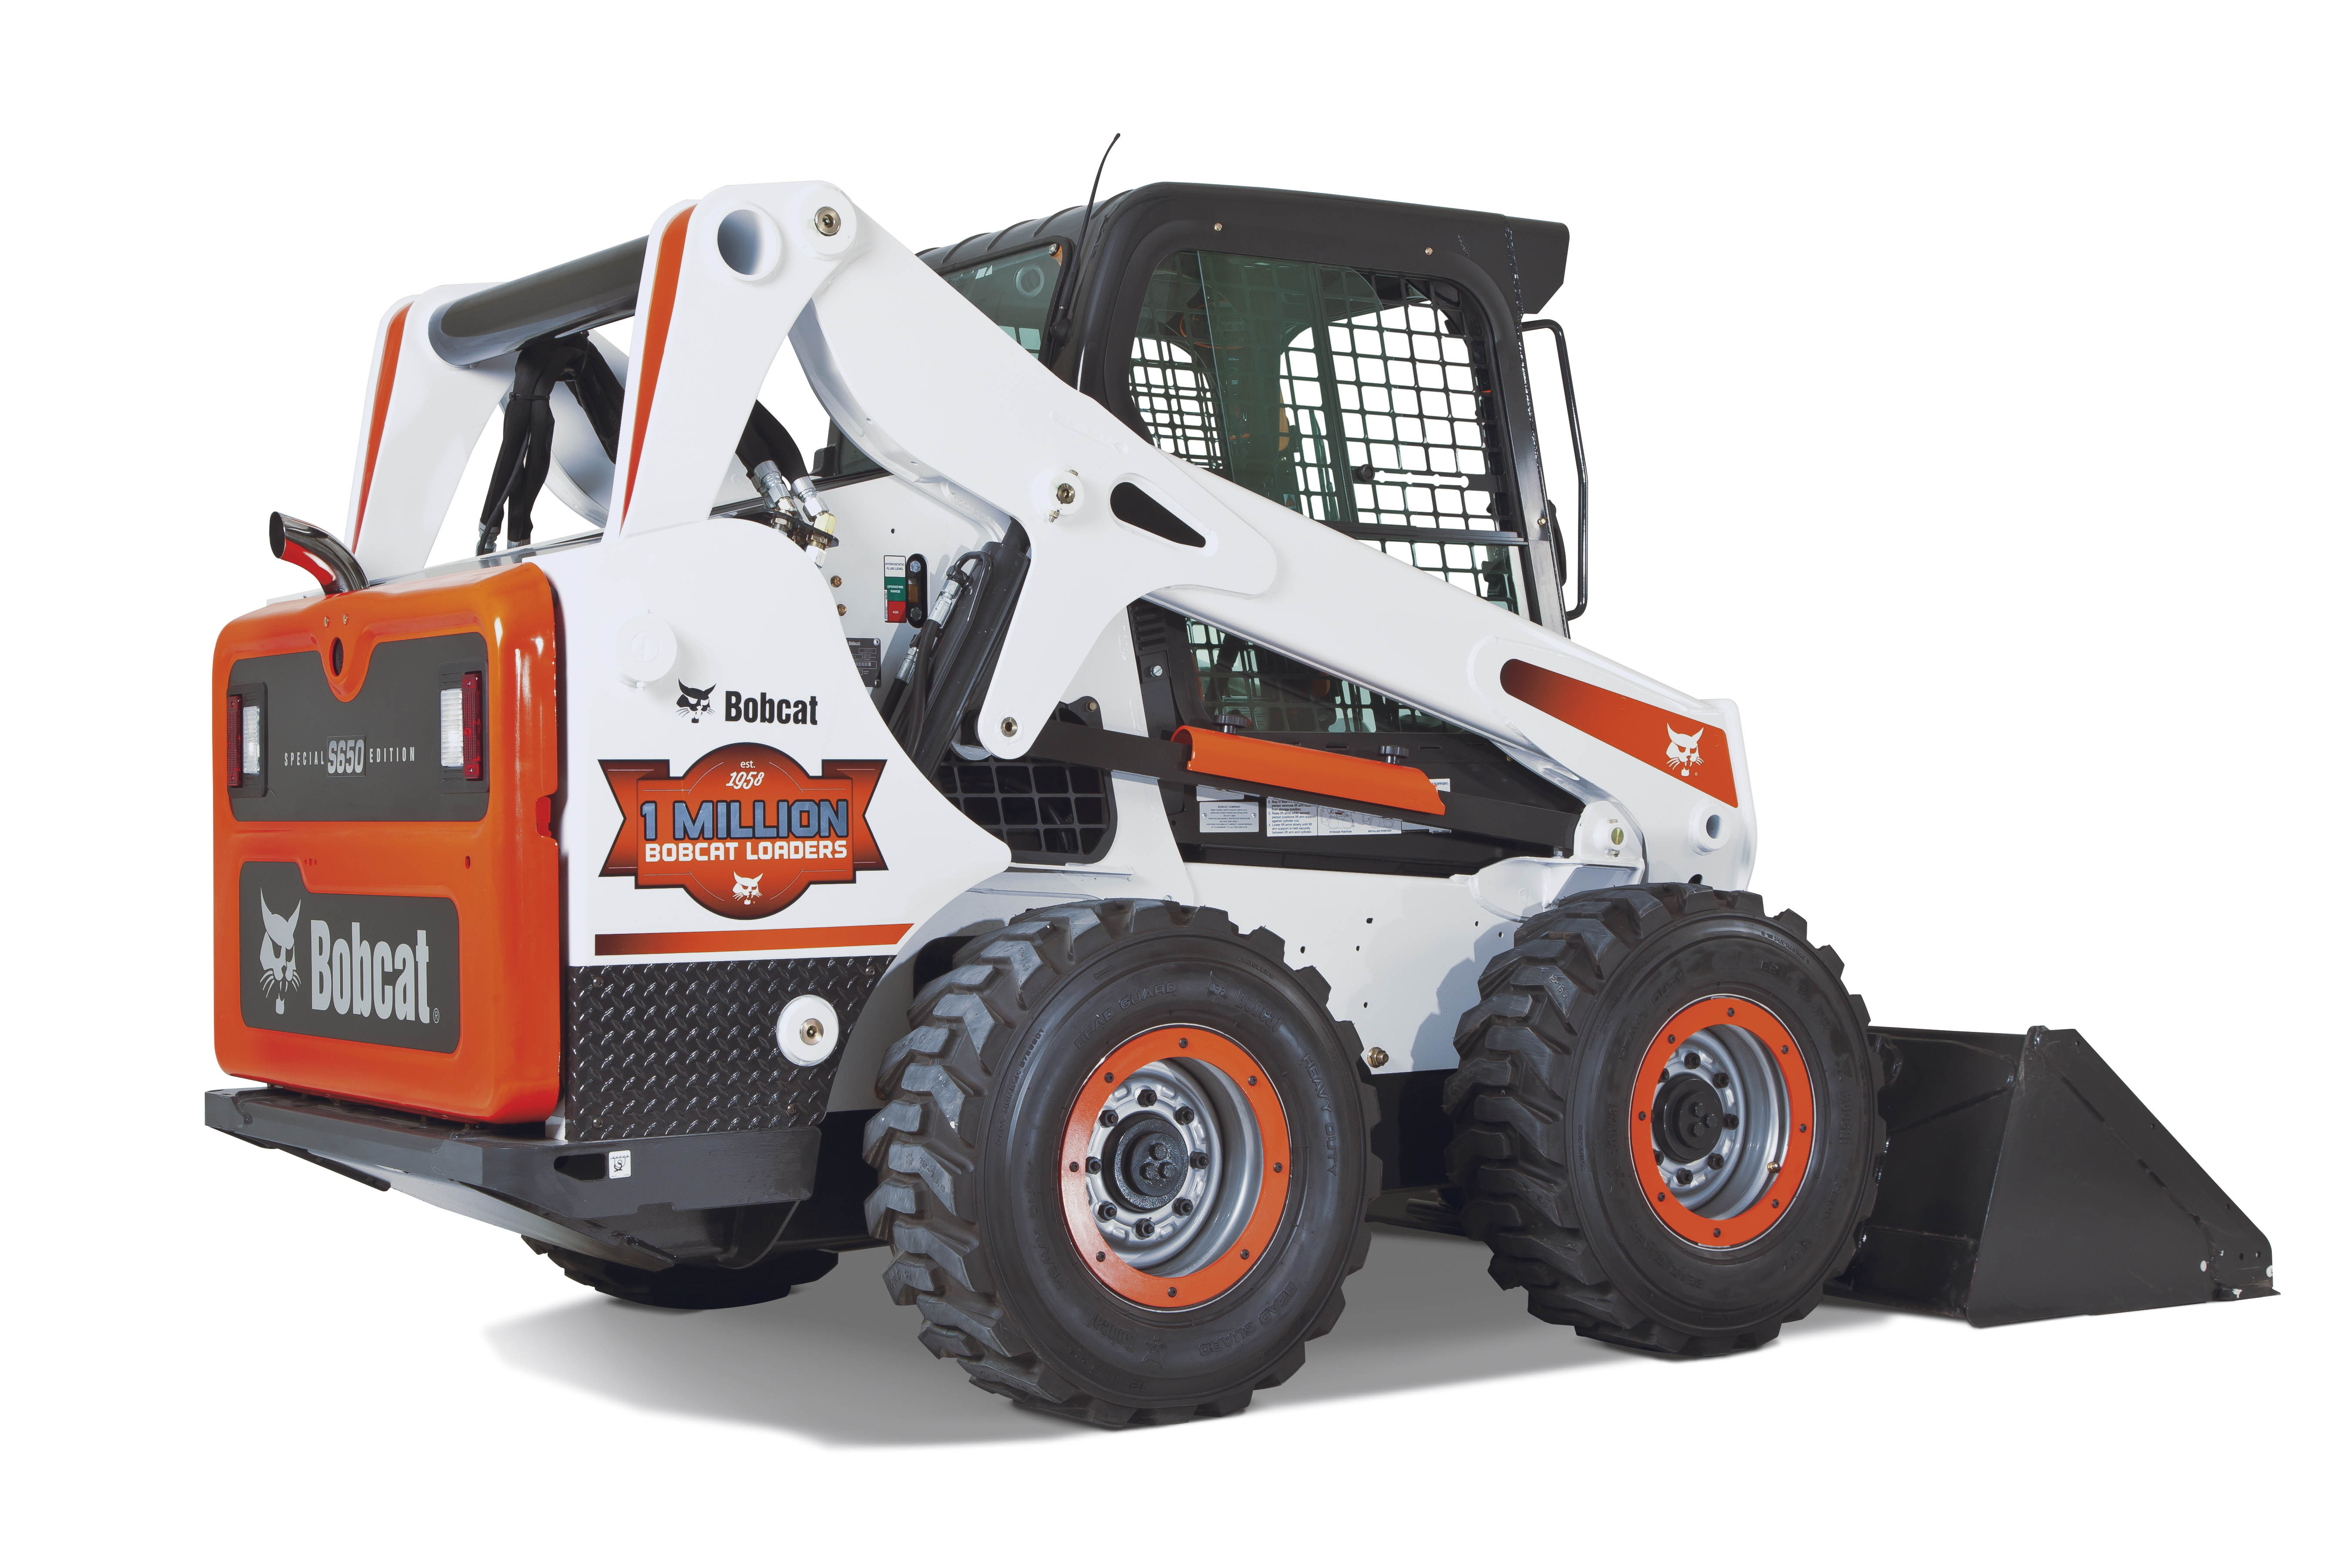 Bobcat Company Marks 1 Million Loaders With Yearlong Celebration